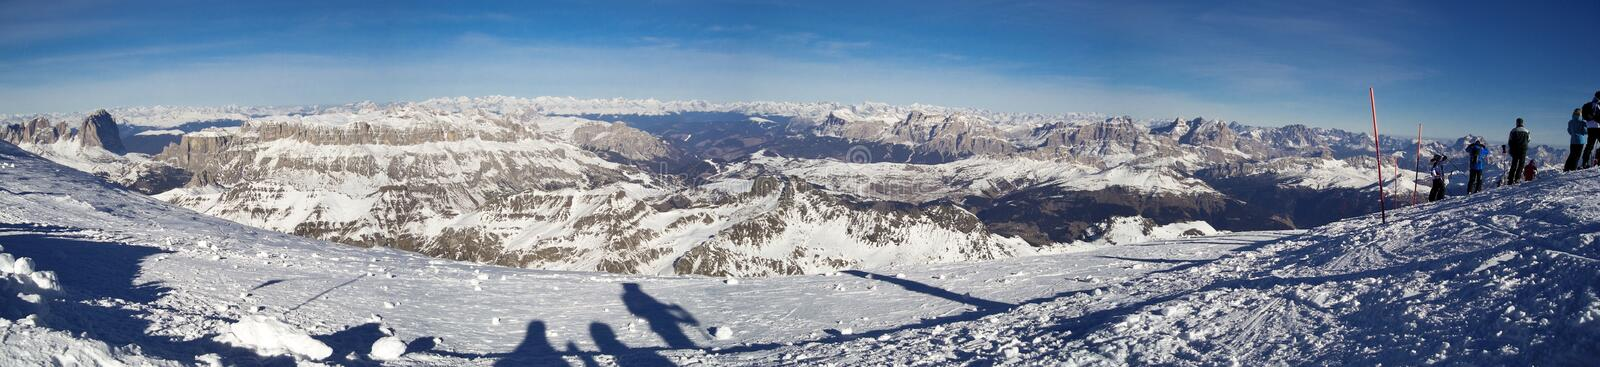 Mountain Landscape PANORAMA. Winter mountain view from the top of Marmolada in a sunny day - panorama - Dolomites, Italy 2007 stock photo